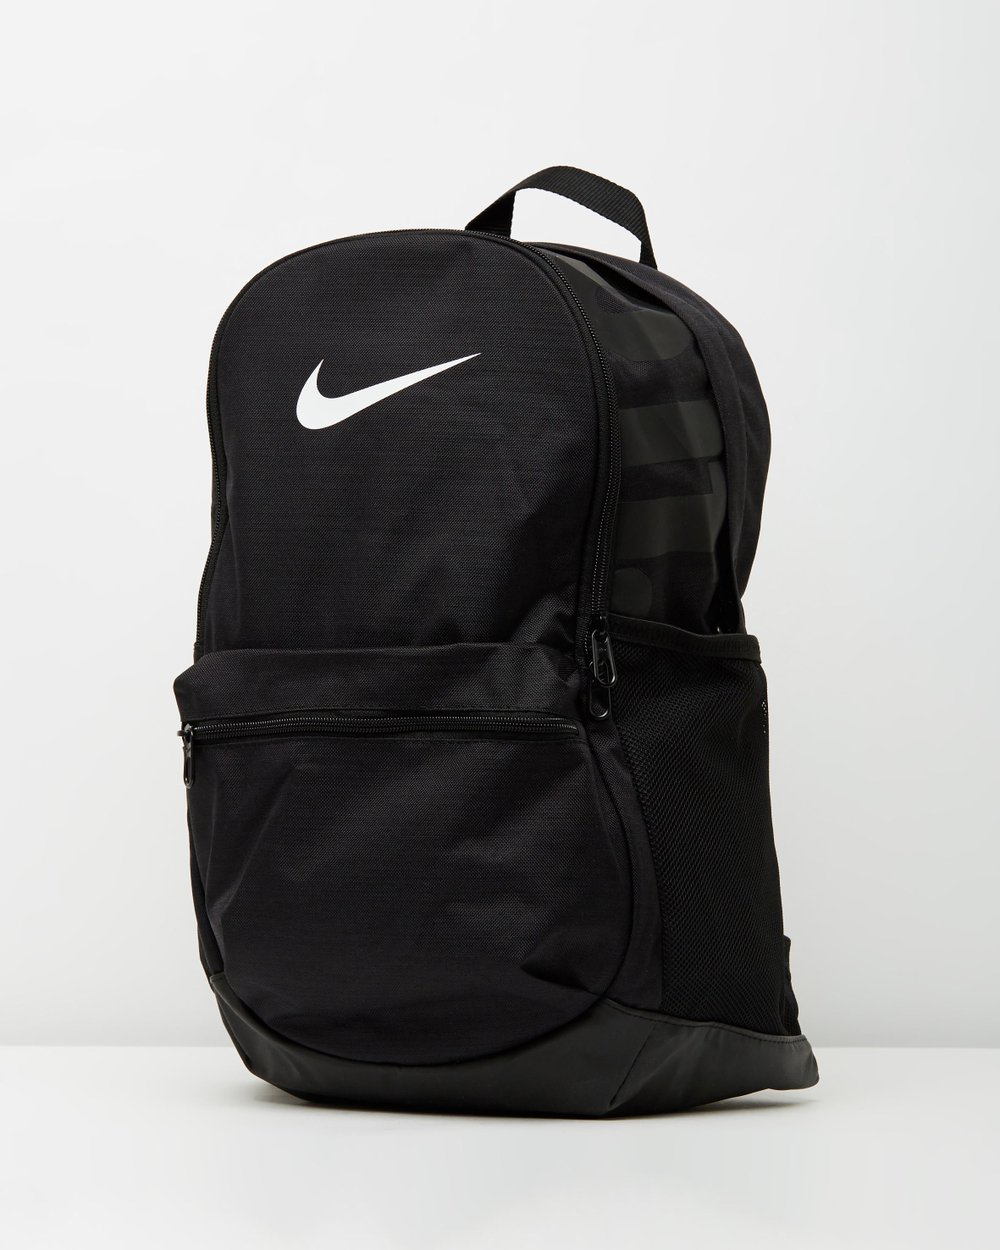 bd5a9a47dd01 Brasilia Backpack by Nike Online